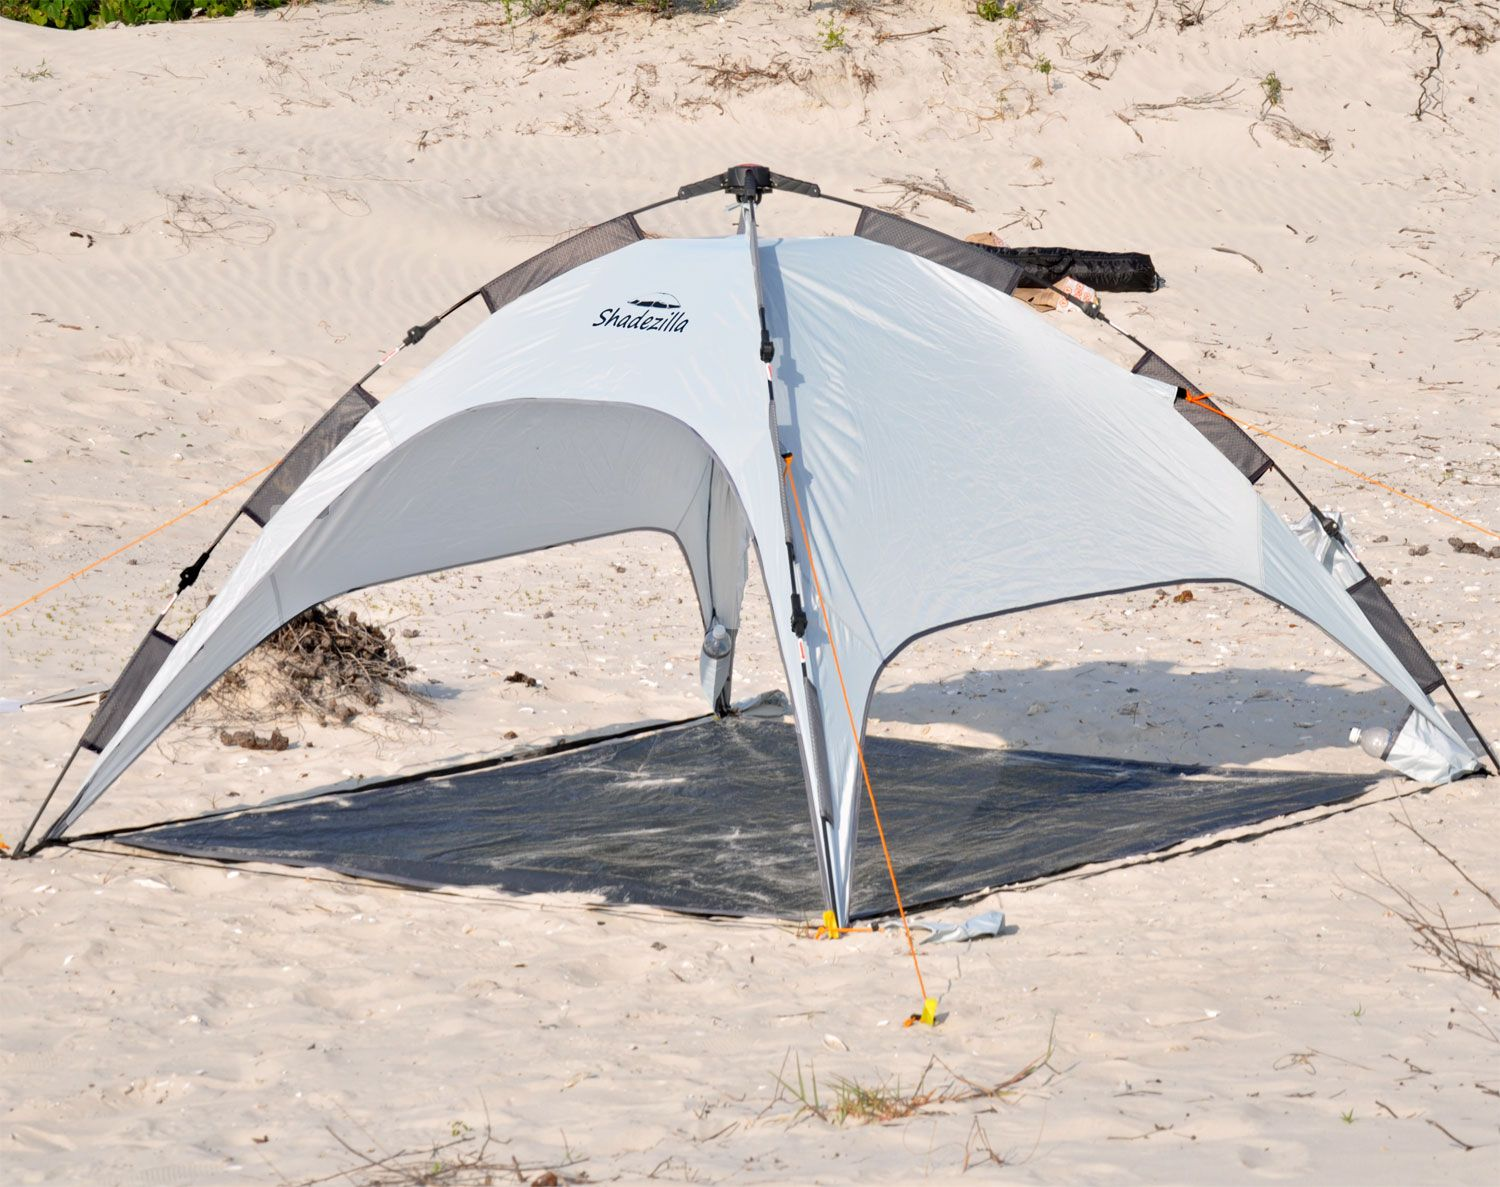 Shadezilla Easy Pop UP Beach Tent - UPF 100 w/ Removable Floor : easy pop up beach tent - memphite.com